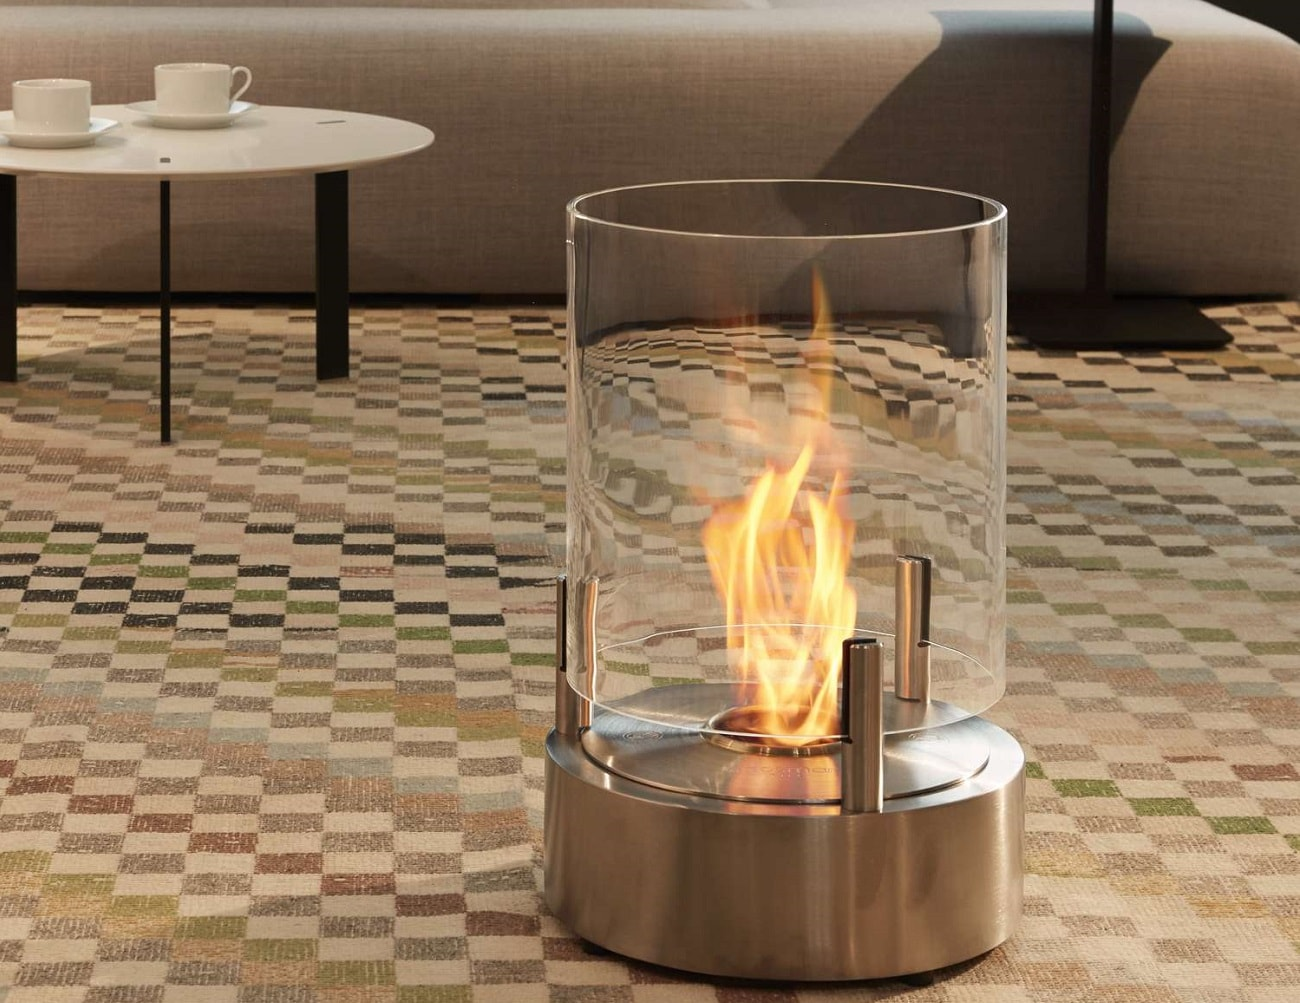 Weather resistant materials have been used behind the construction of the fully portable Cyl Outdoor Fireplace by EcoSmart Fire. Together with the round stainless steel base and the 3 litre stainless steel burner encased within